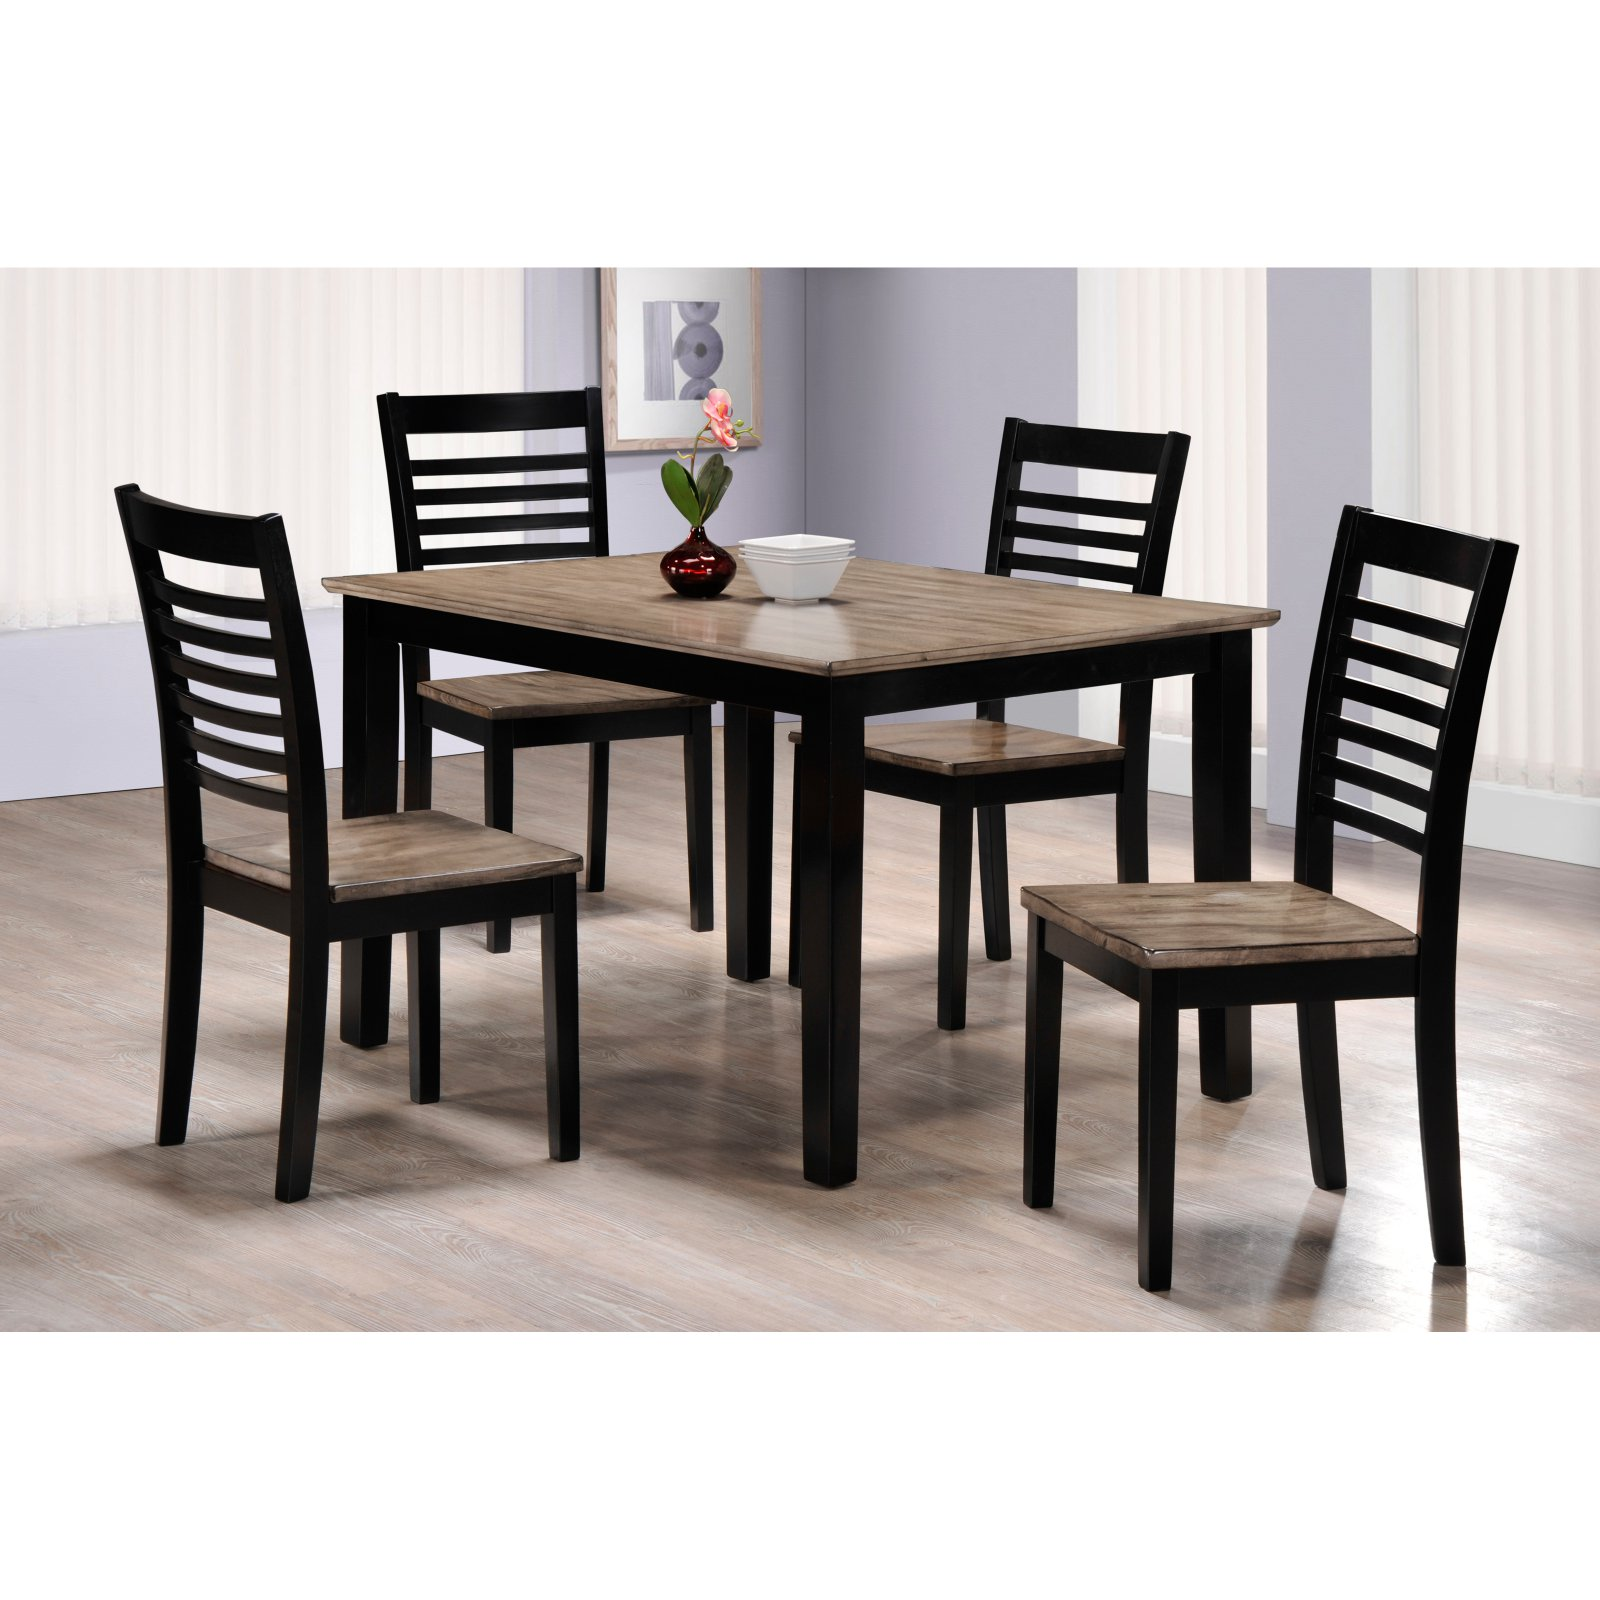 Simmons East Pointe 5 Piece Dining Set